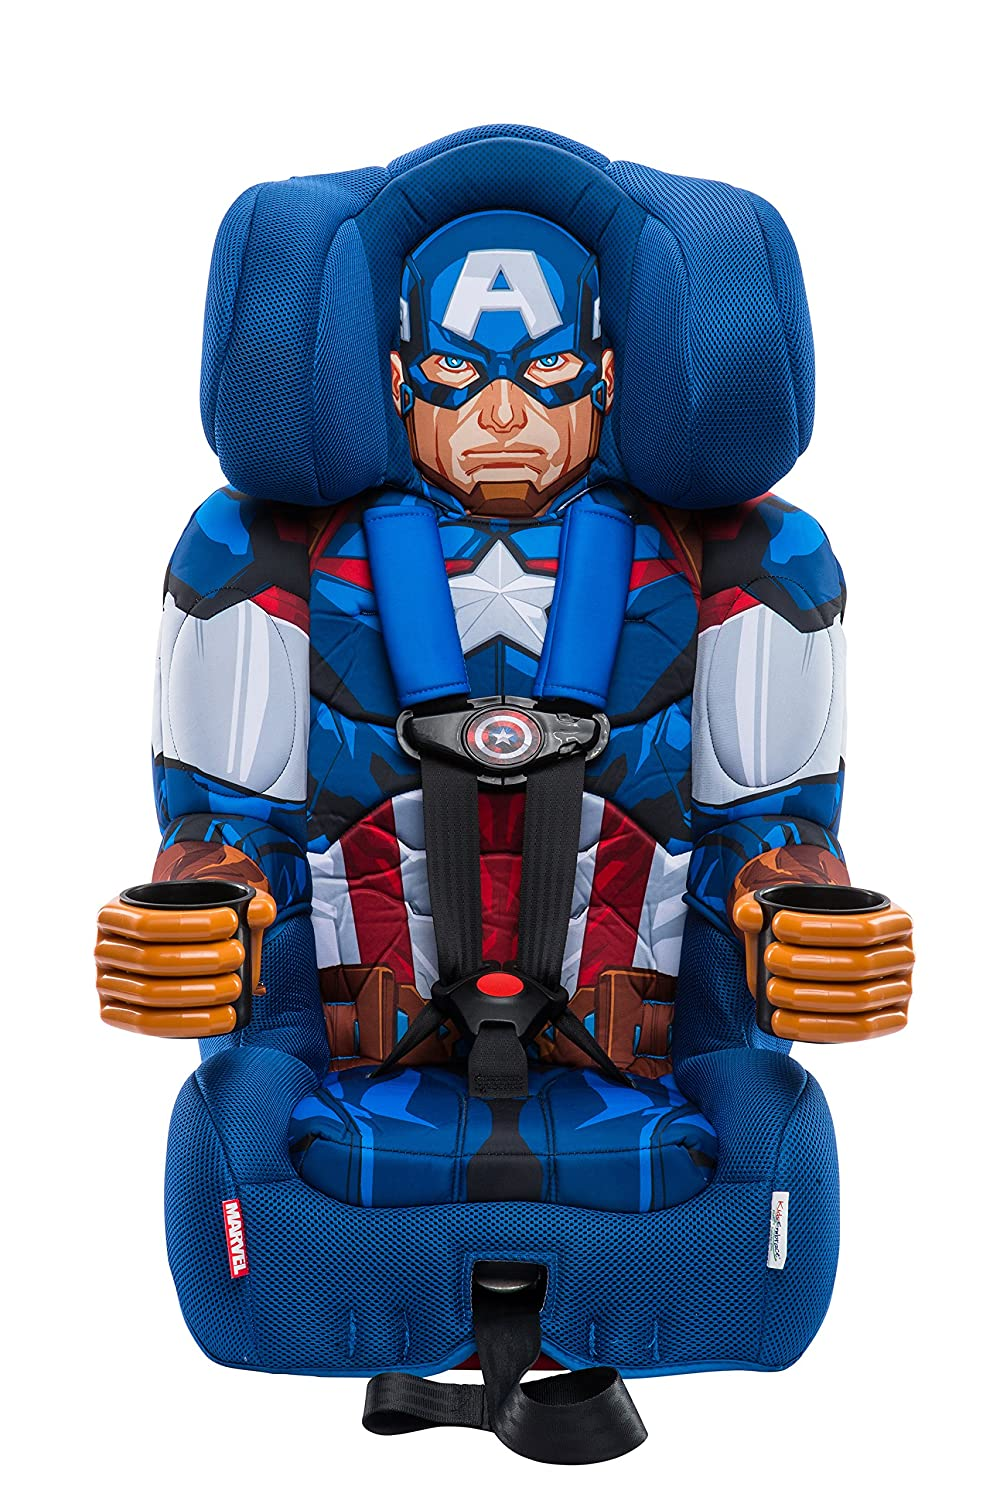 KidsEmbrace Friendship Combination Booster-Captain America, Blue, Red 3001CAPCAN